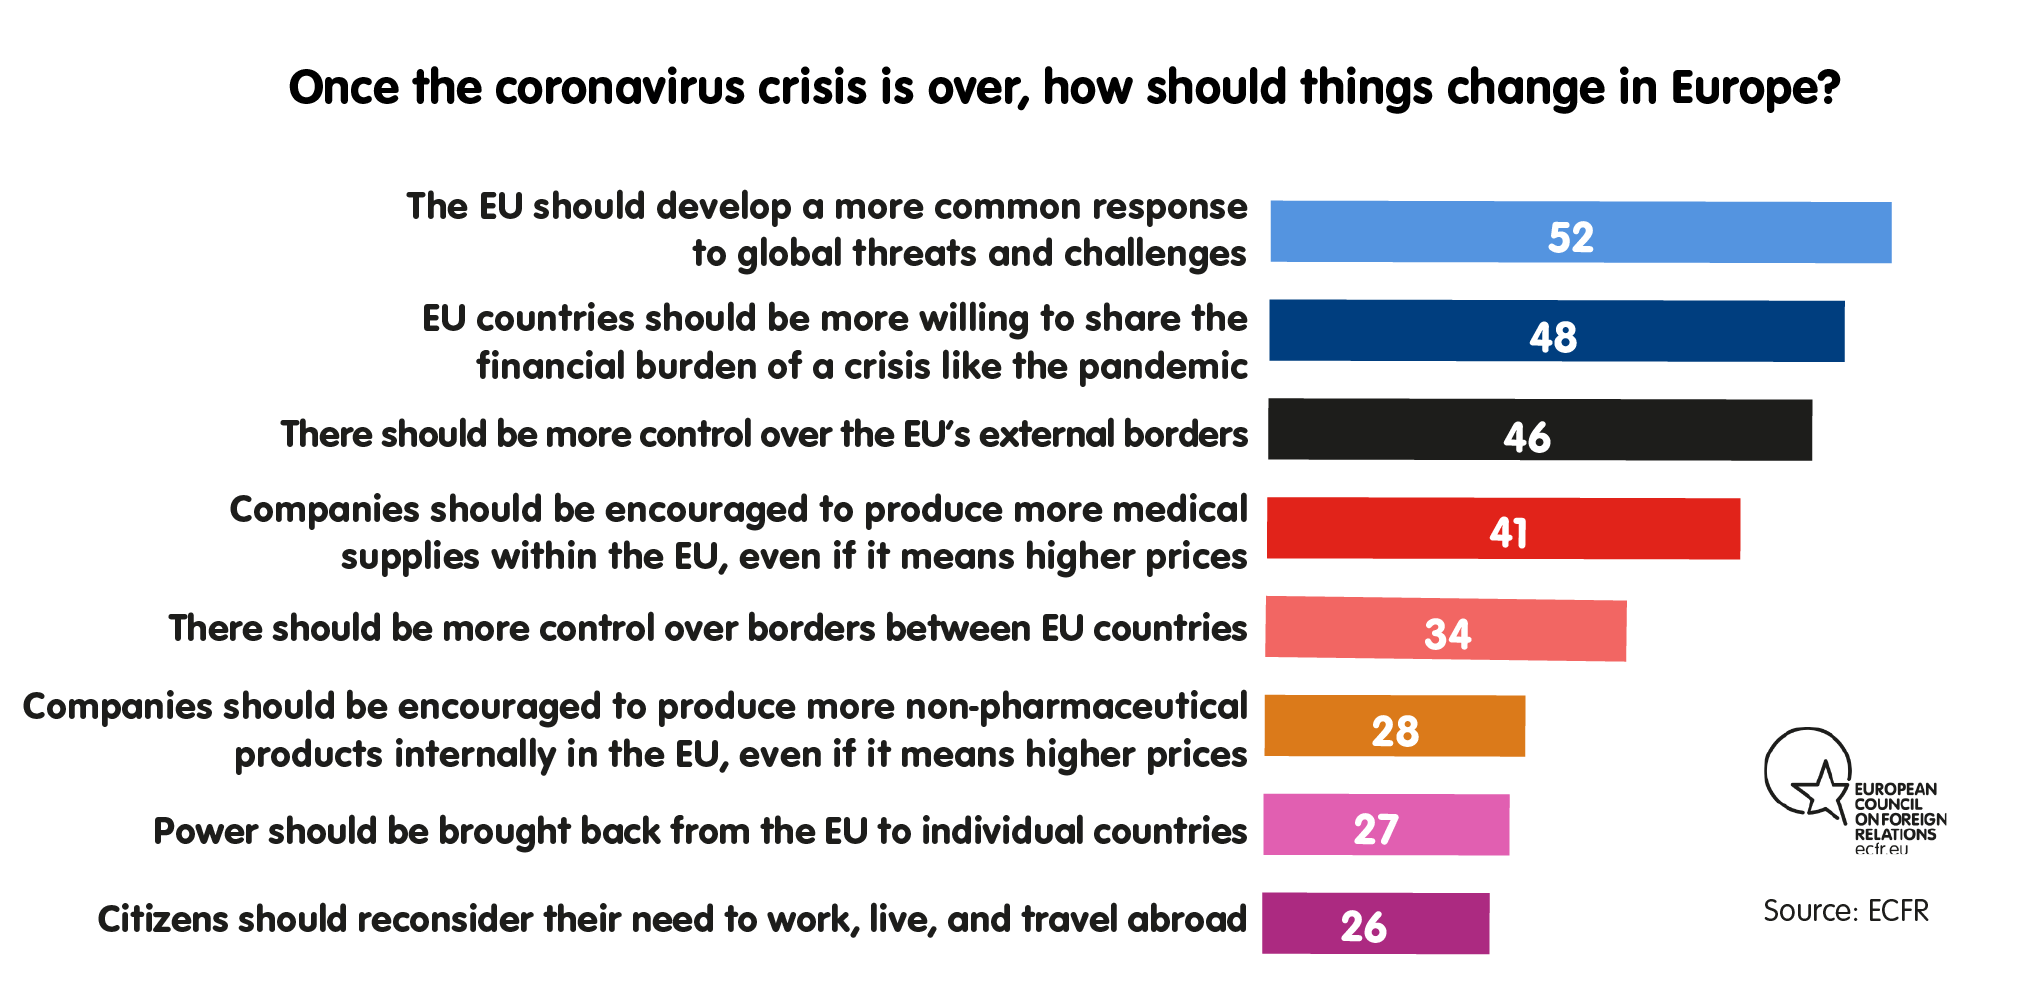 Once the coronavirus crisis is over, how should things change in Europe?